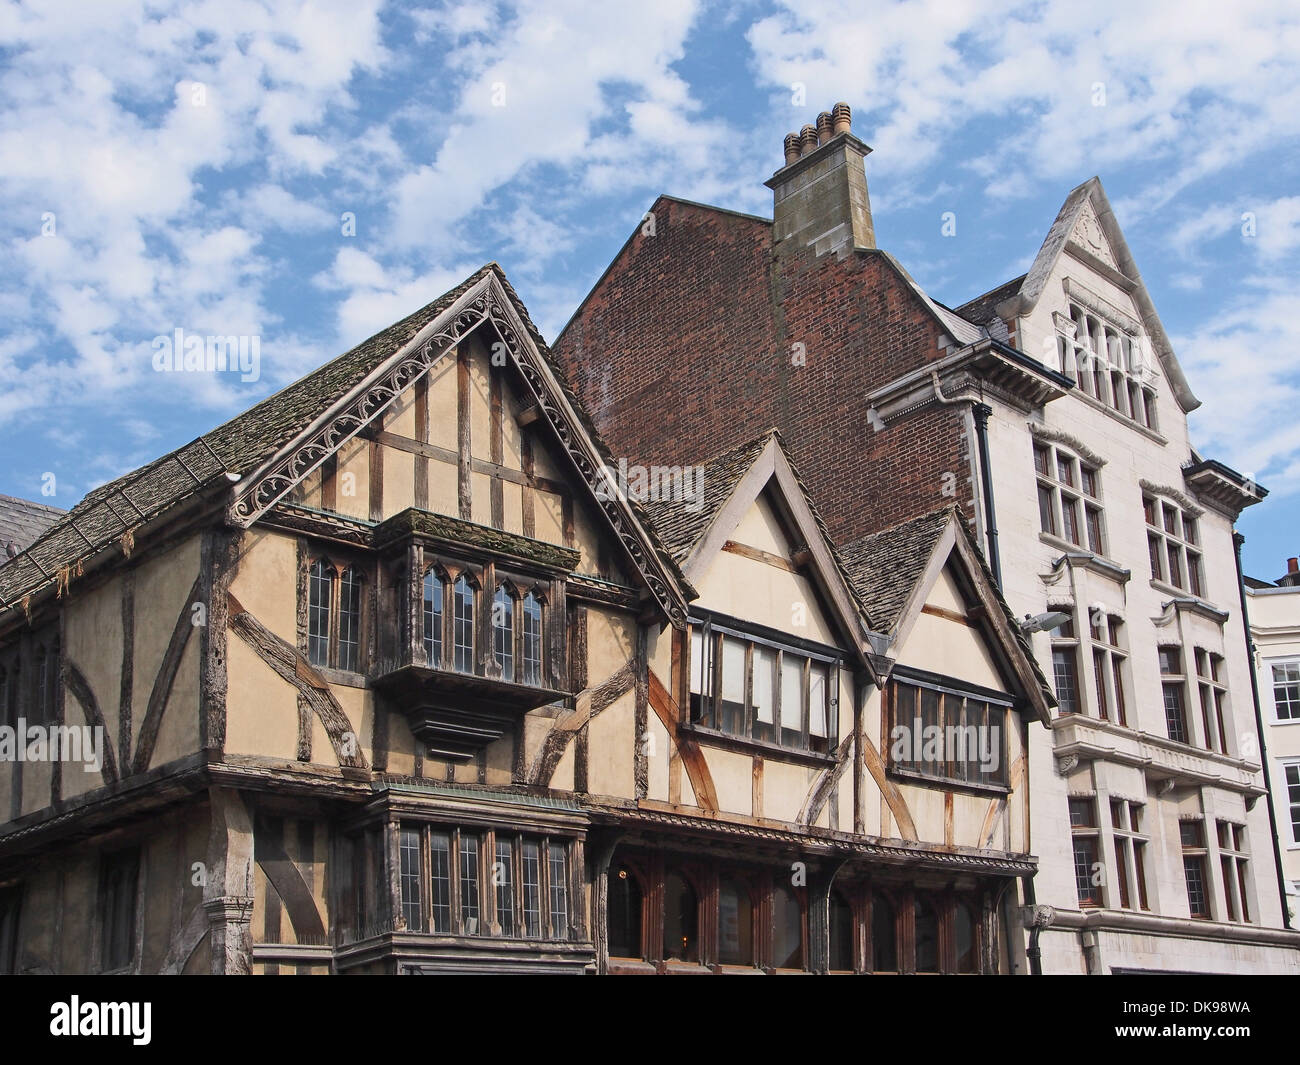 Oxford fourteenth century building, still used as a shop - Stock Image